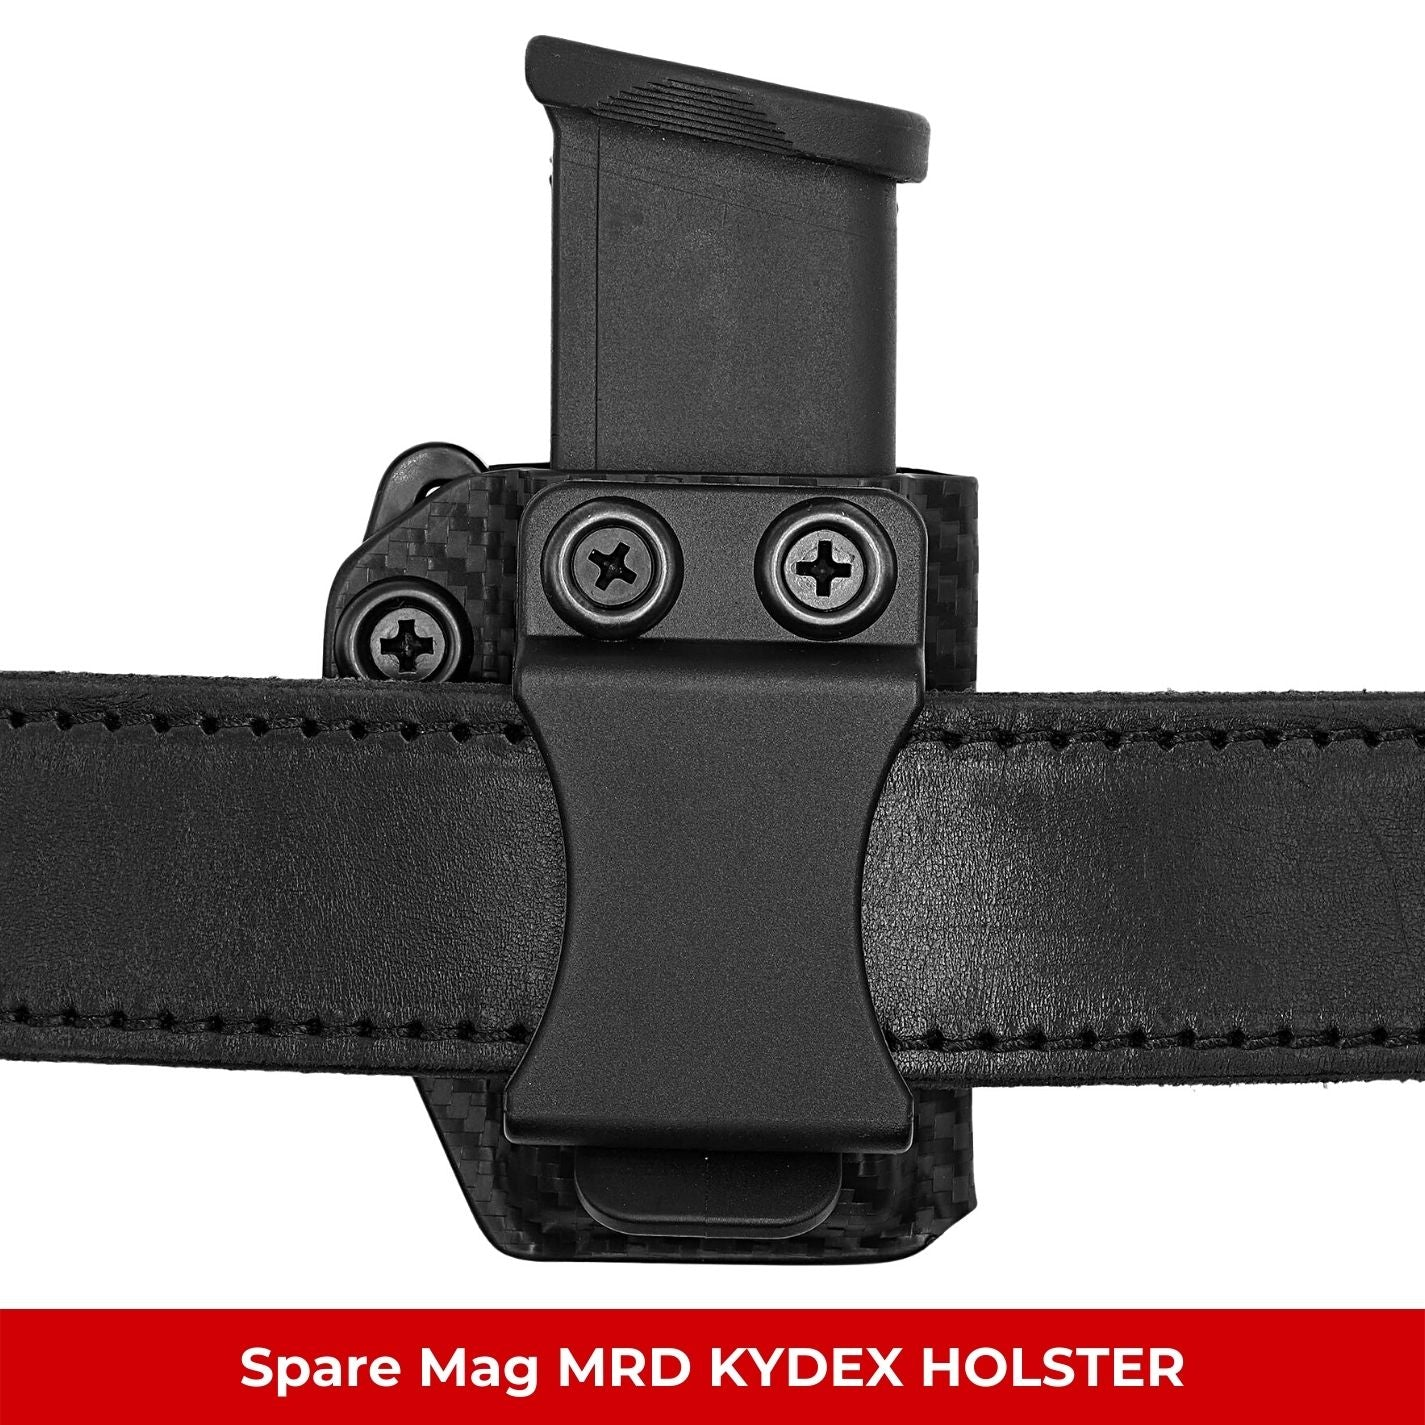 MRD KYDEX Mag Holsters